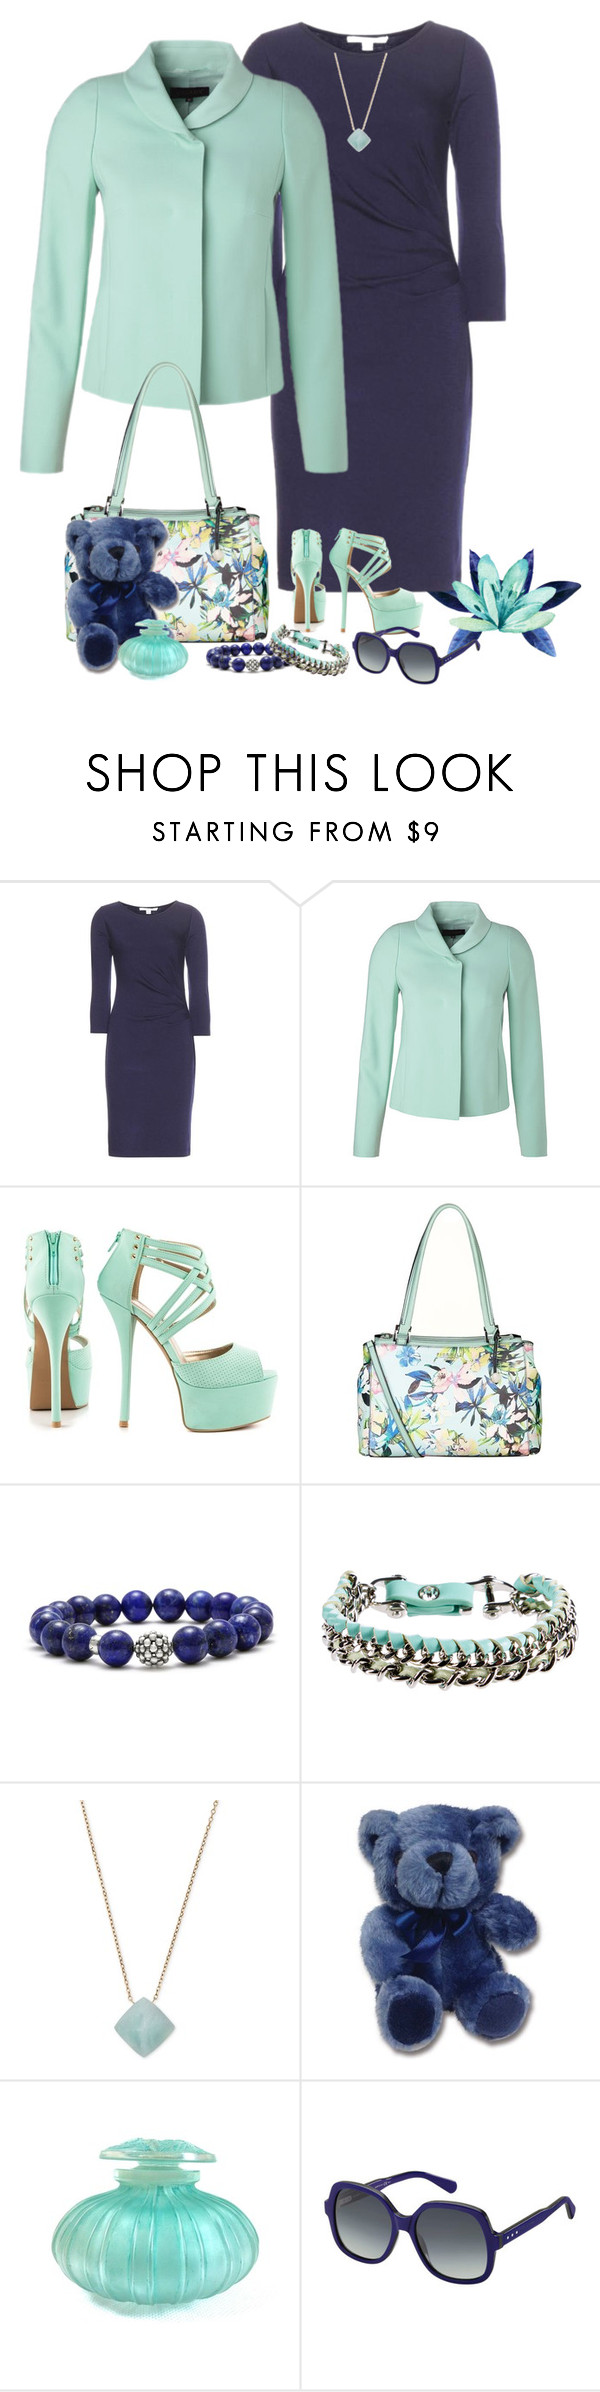 """""""Blue and Green"""" by lorrainekeenan ❤ liked on Polyvore featuring Diane Von Furstenberg, ESCADA, Qupid, Lipsy, Lagos, Michael Kors, Marc Jacobs, women's clothing, women and female"""